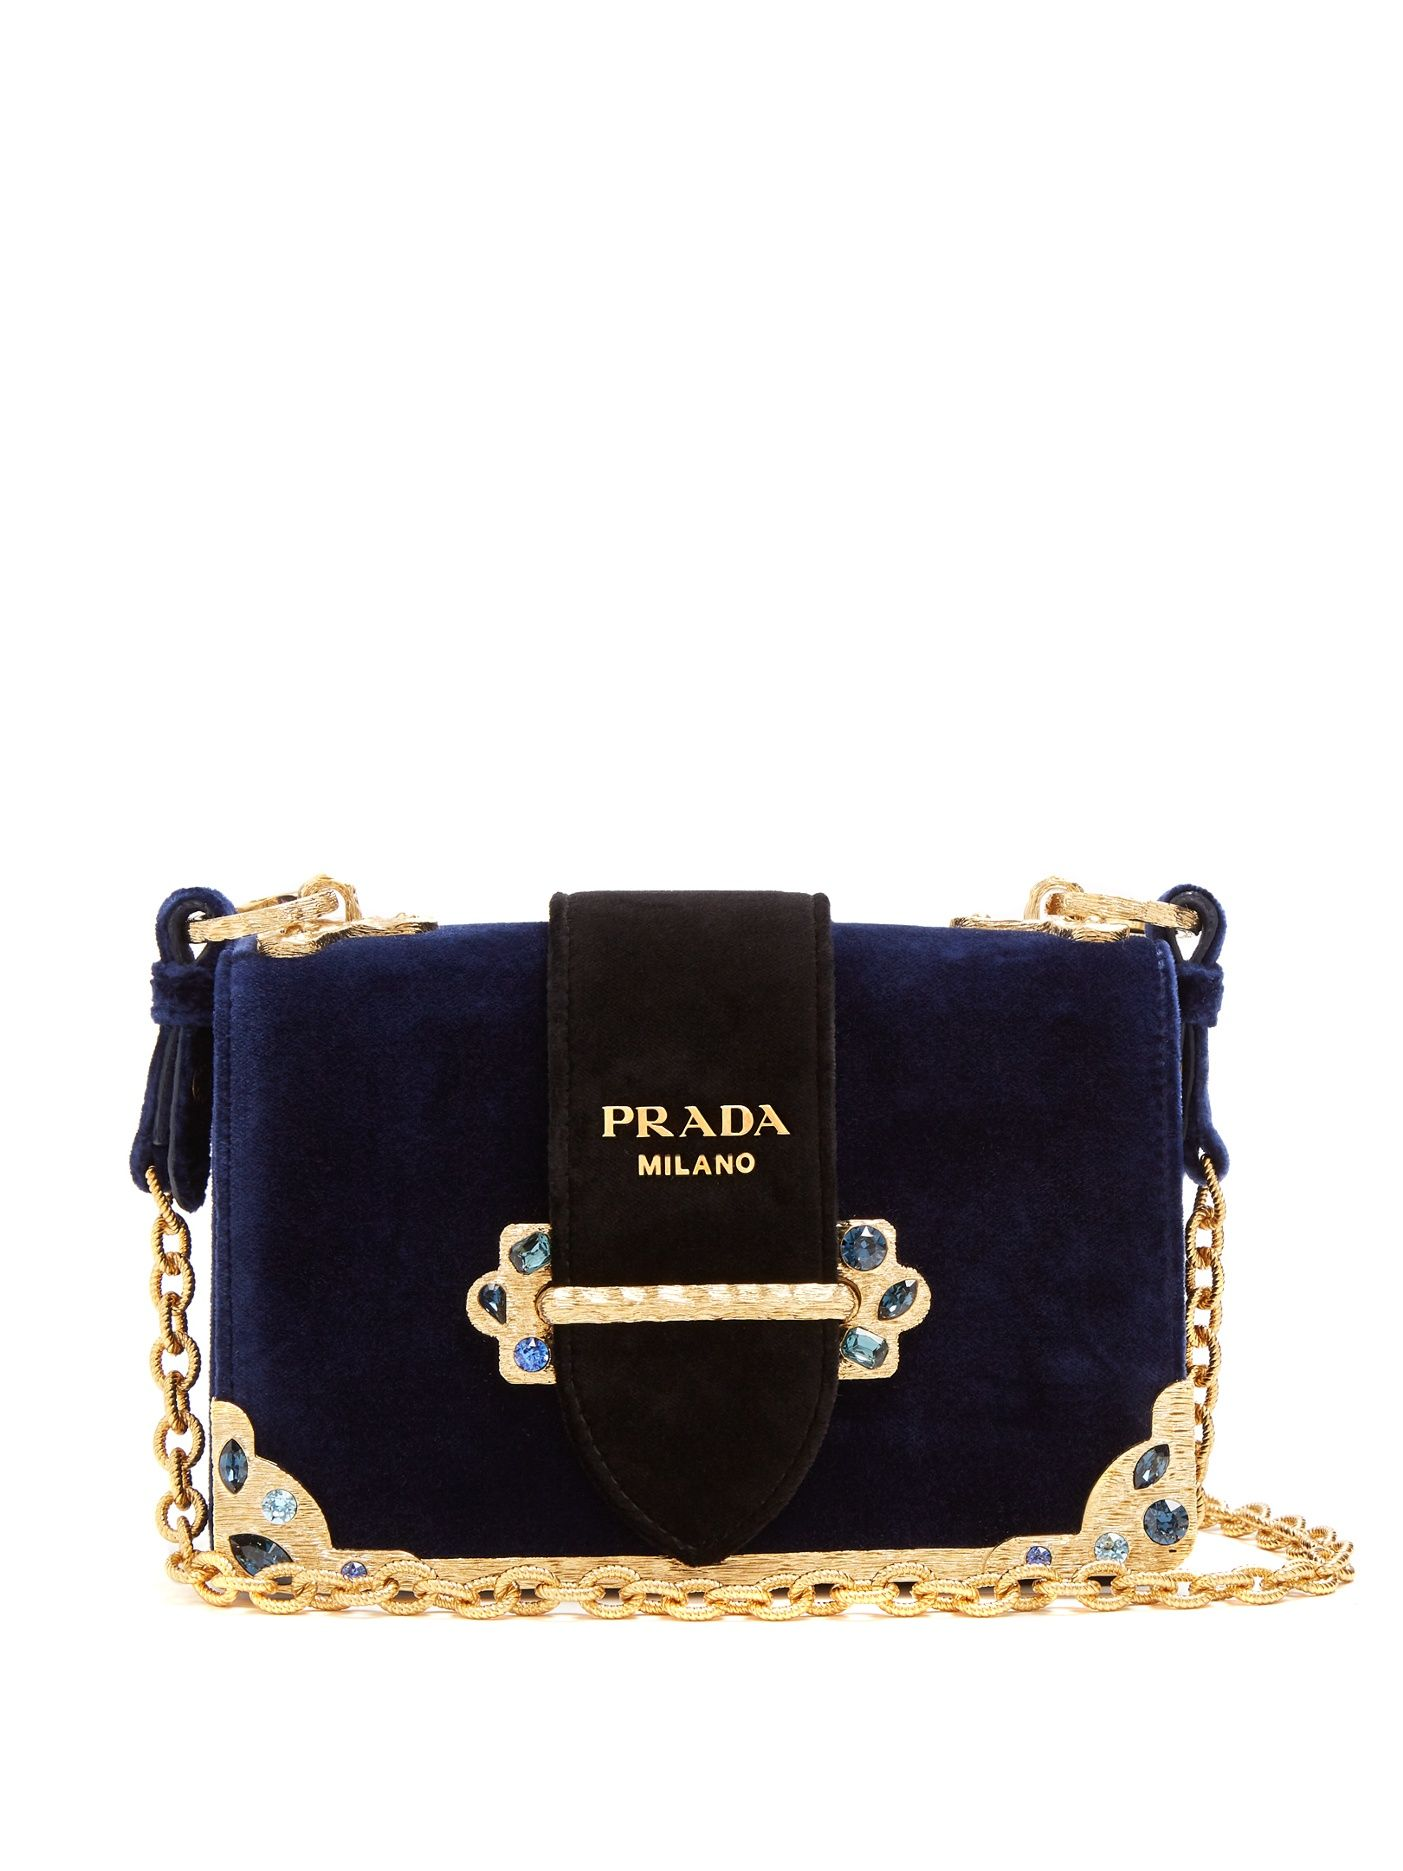 Prada Bags Ursulakus - Sale! Up to 75% OFF! Shop at Stylizio for women s  and men s designer handbags, luxury sunglasses, watches, jewelry, purses,  wallets, ... bb778f93be